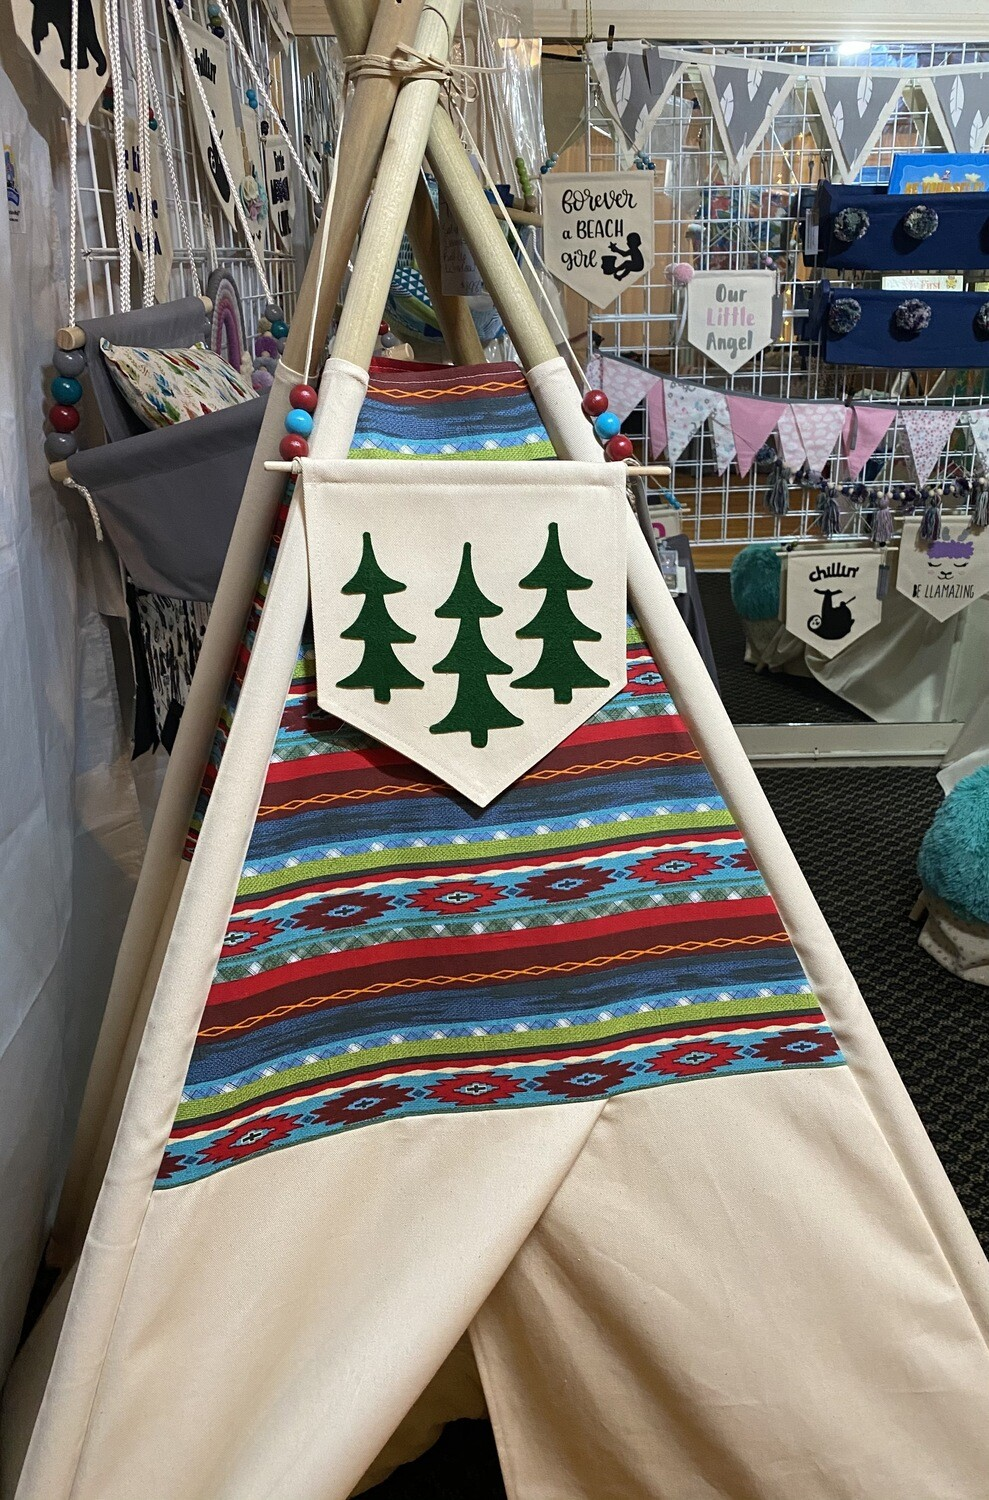 NEW The Lodge Teepee, Play Tent, Handmade Teepee, Kids Room Decor,  Tribal Decor, Nursery Decor